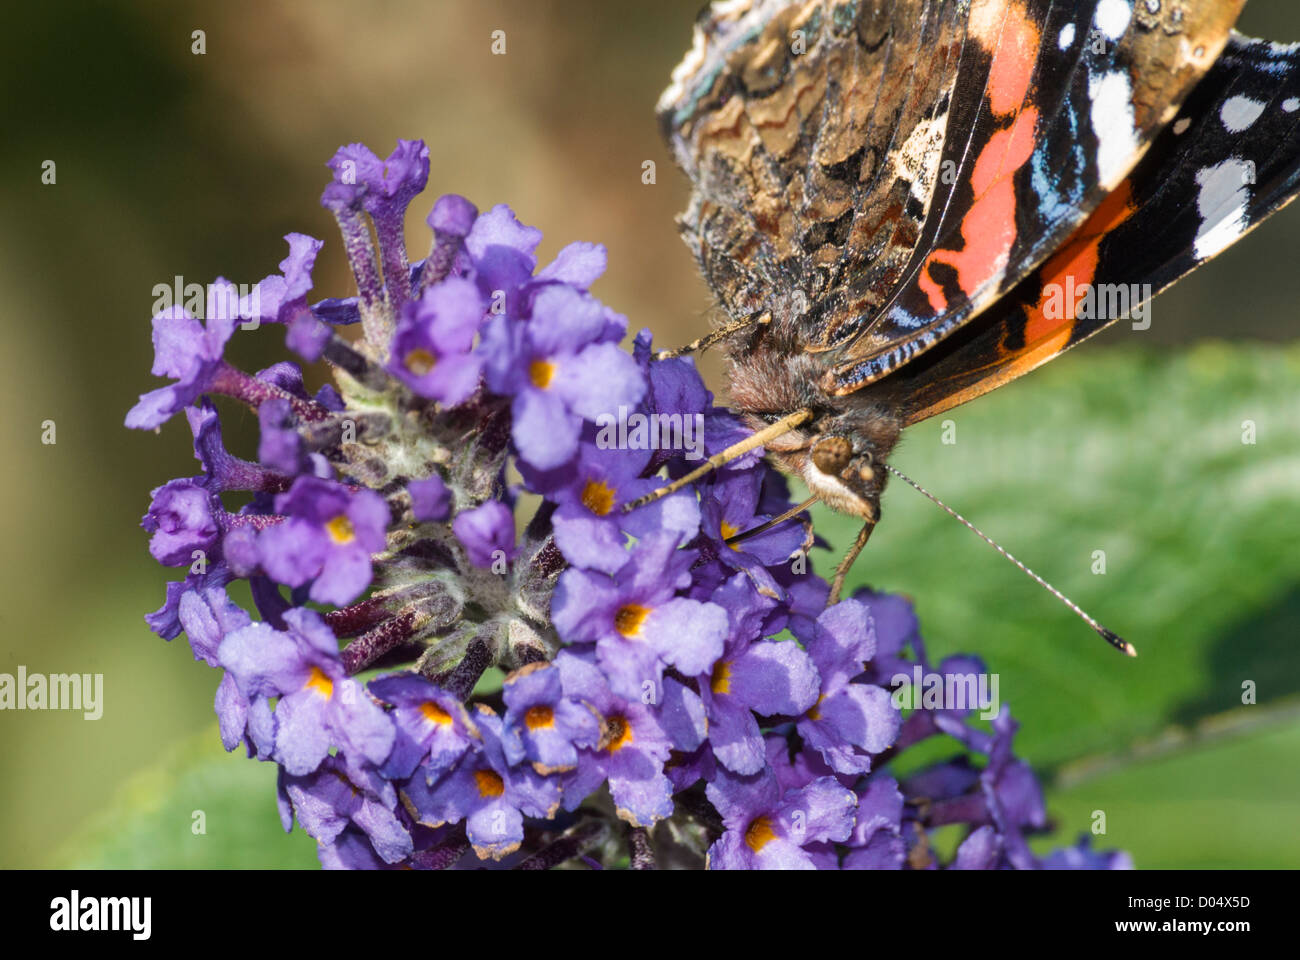 Close-up of Red Admiral Butterfly, Vanessa atalanta, feeding on Buddleia flowers in a South Yorkshire garden. - Stock Image